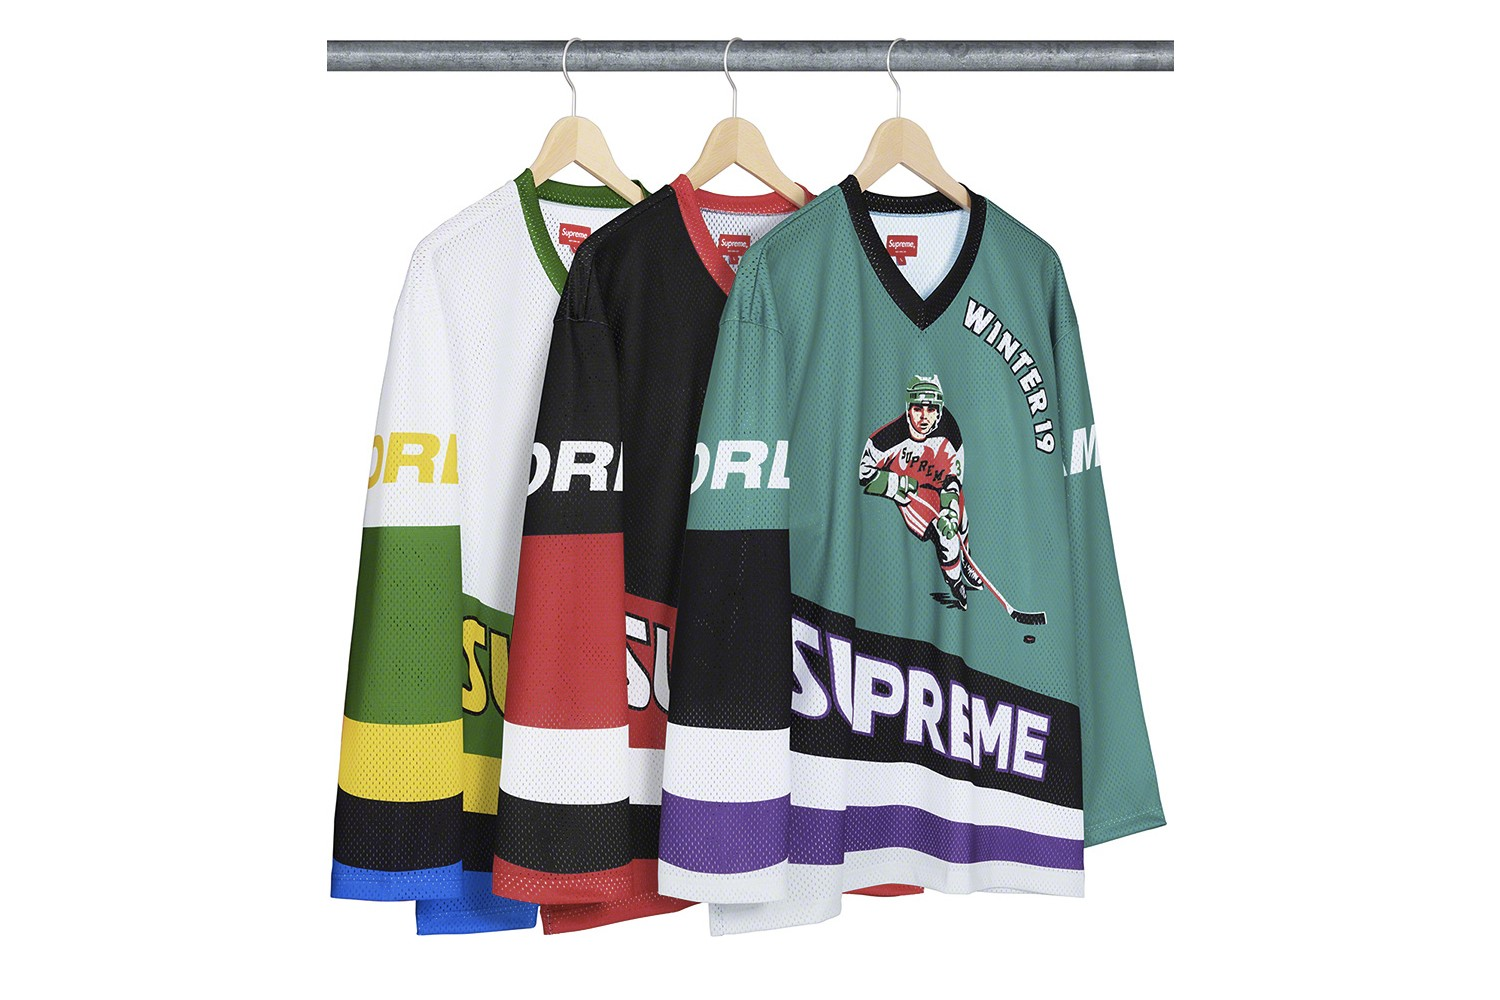 Supreme Fall Winter 2019 Week 9 Drop List 4 Palace maharishi thisisneverthat Stüssy UNDEFEATED HUMAN MADE WTAPS BAPE MCM